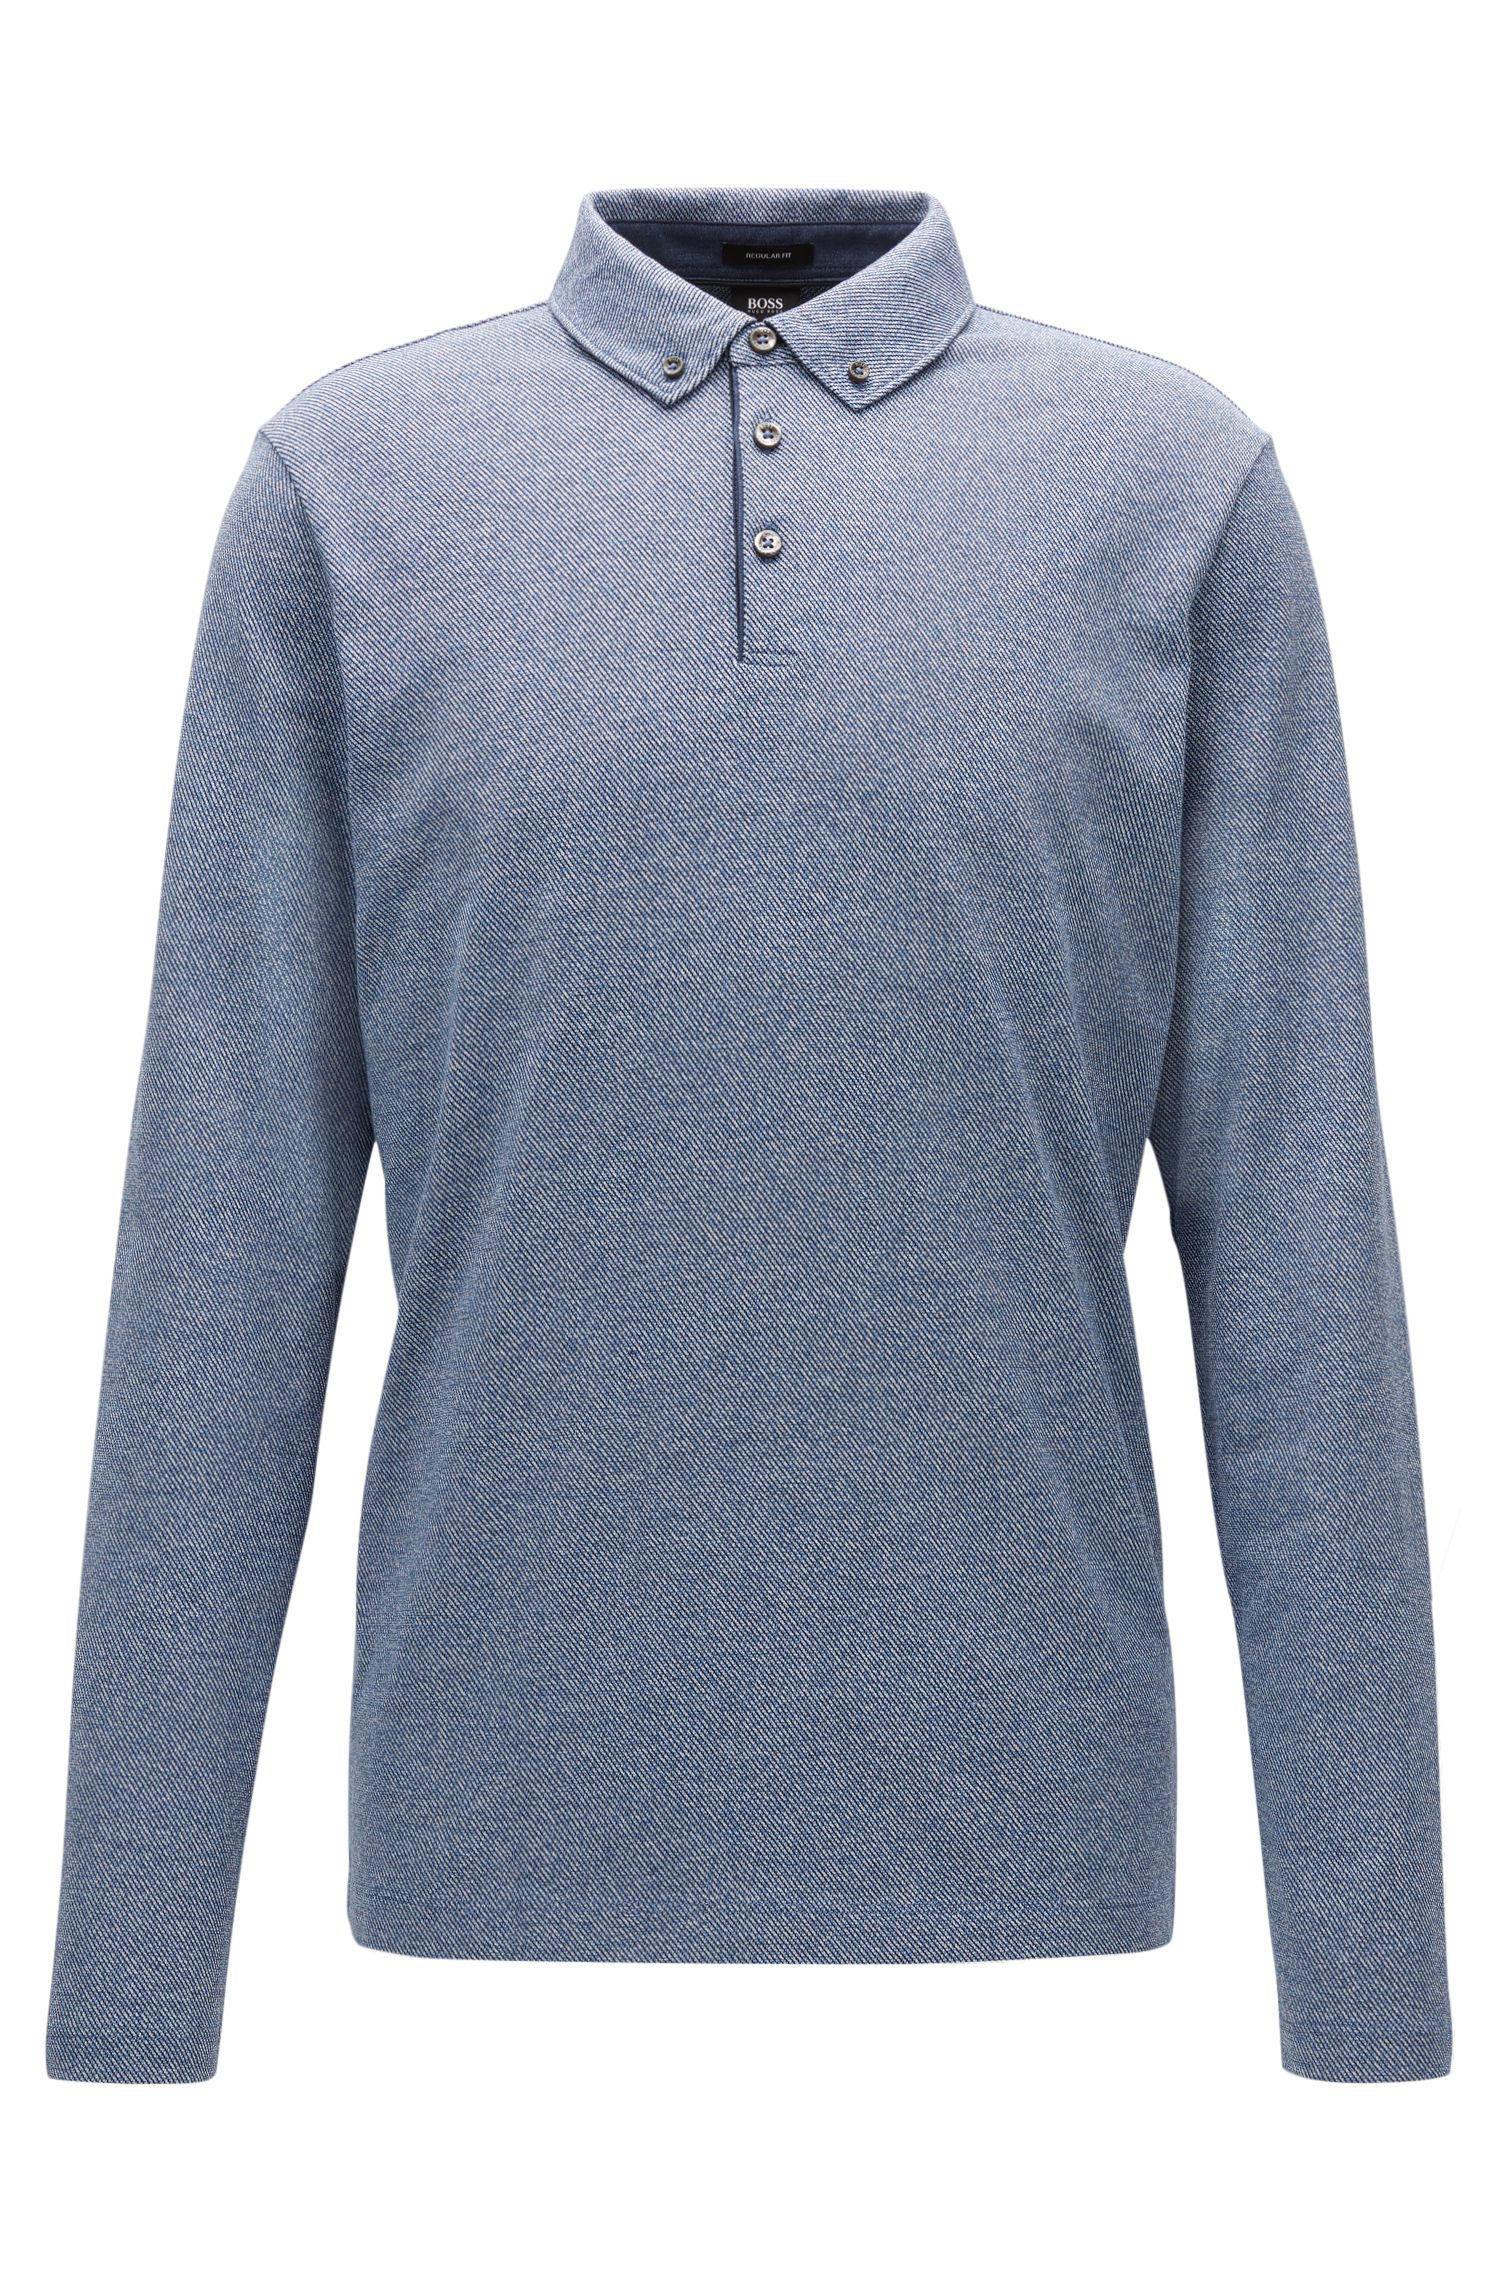 Regular-Fit Longsleeve-Poloshirt aus Baumwolle mit Button-Down-Kragen